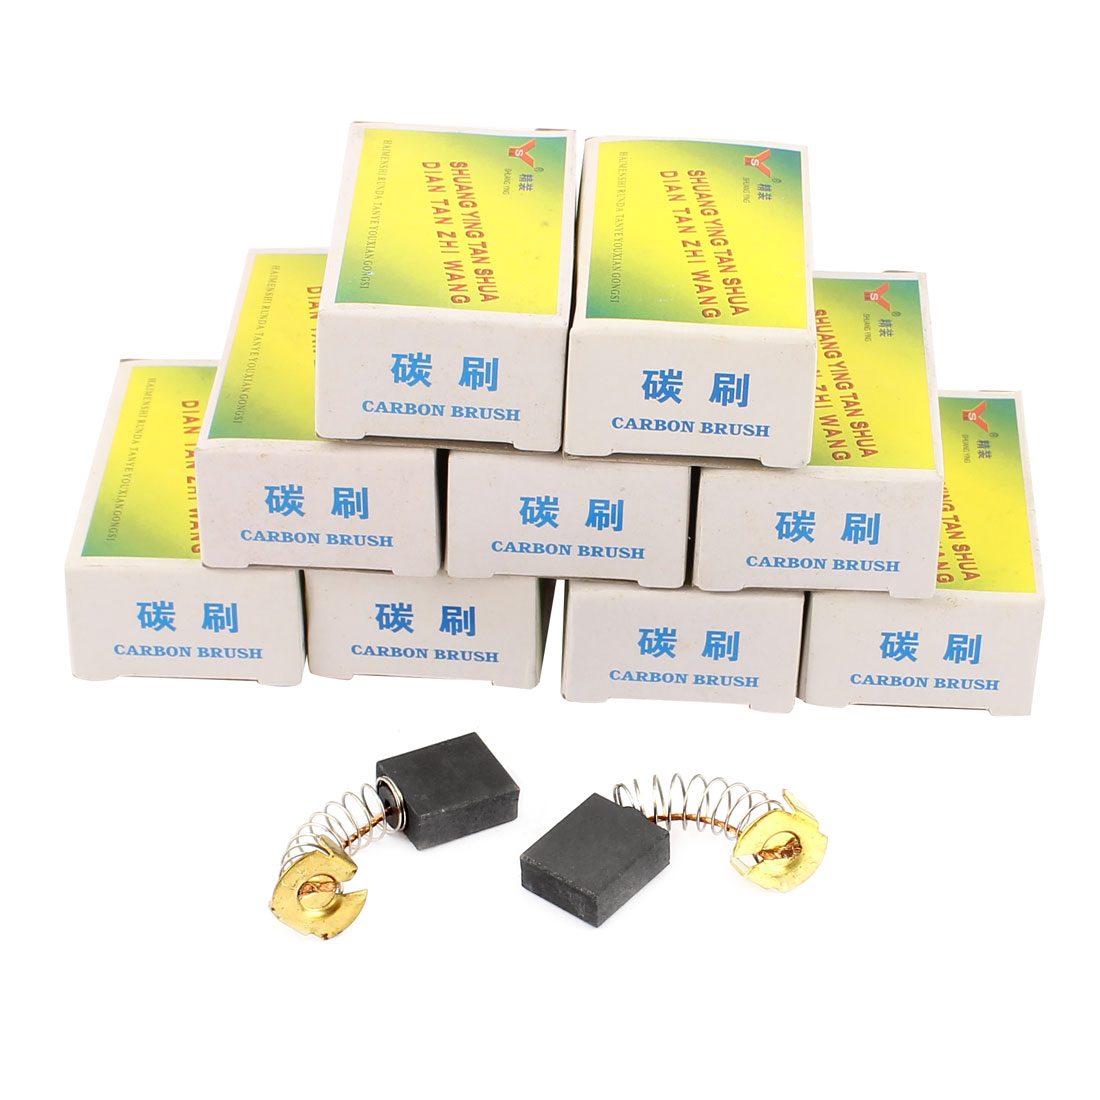 20 Pcs Replacement Motor CB153 Carbon Brush 16 x 13 x 5mm for Electric Motors